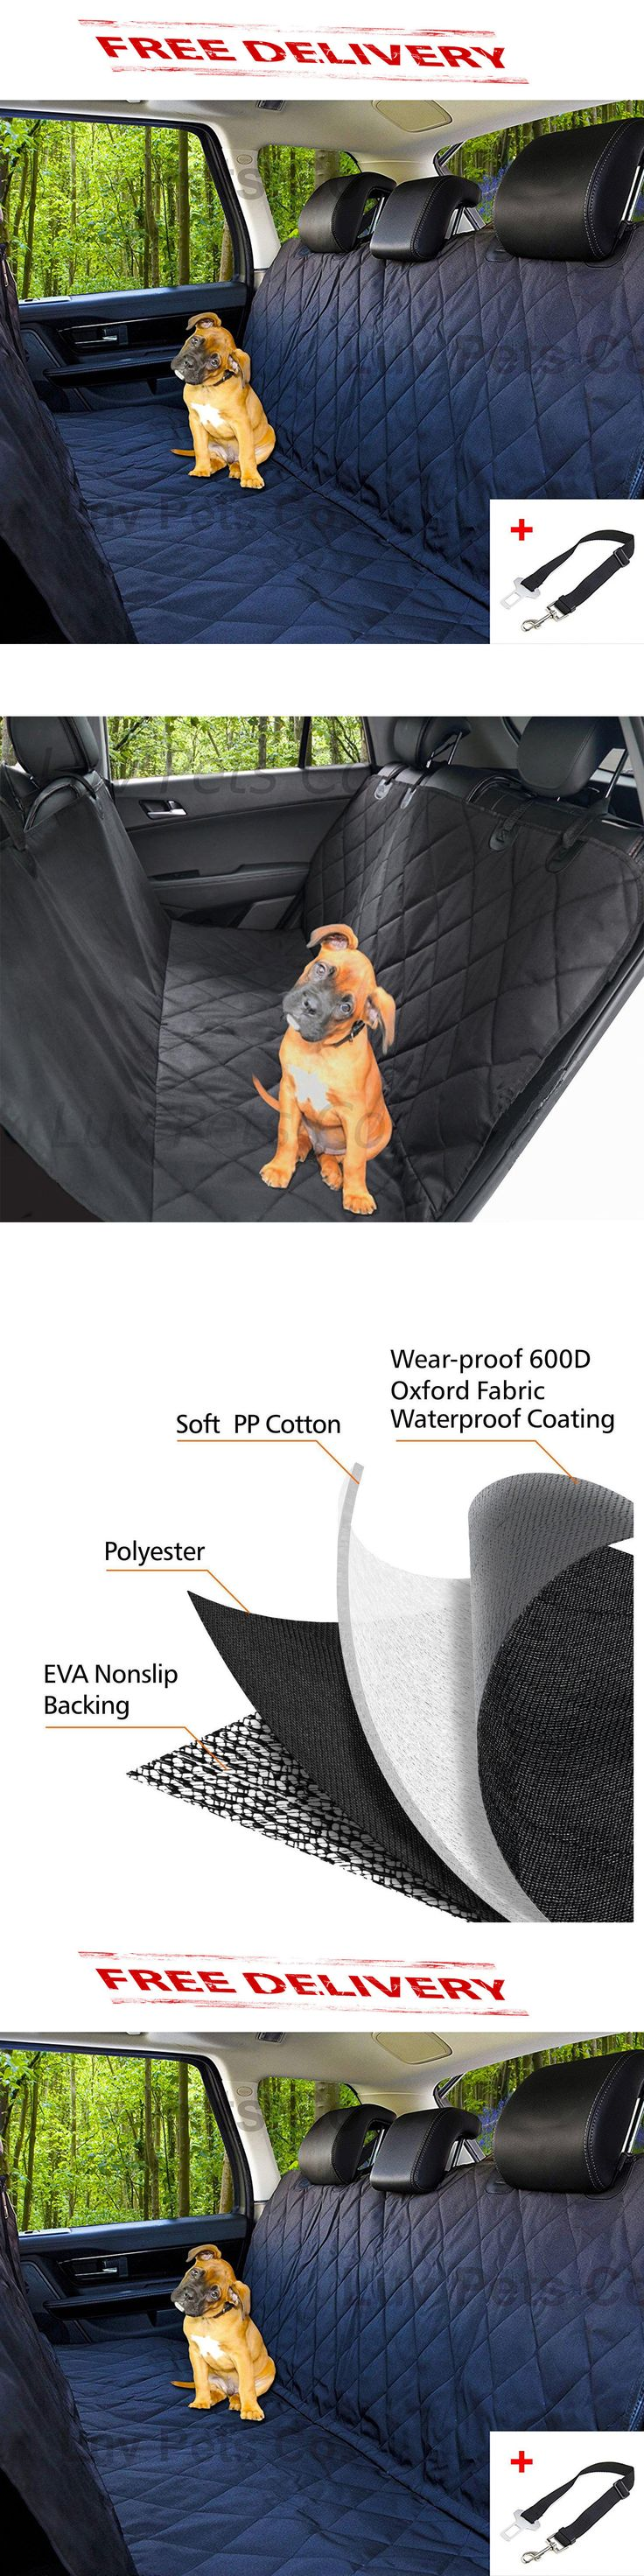 Car seat covers 117426 x large dog seat cover hammock pet seats waterproof for